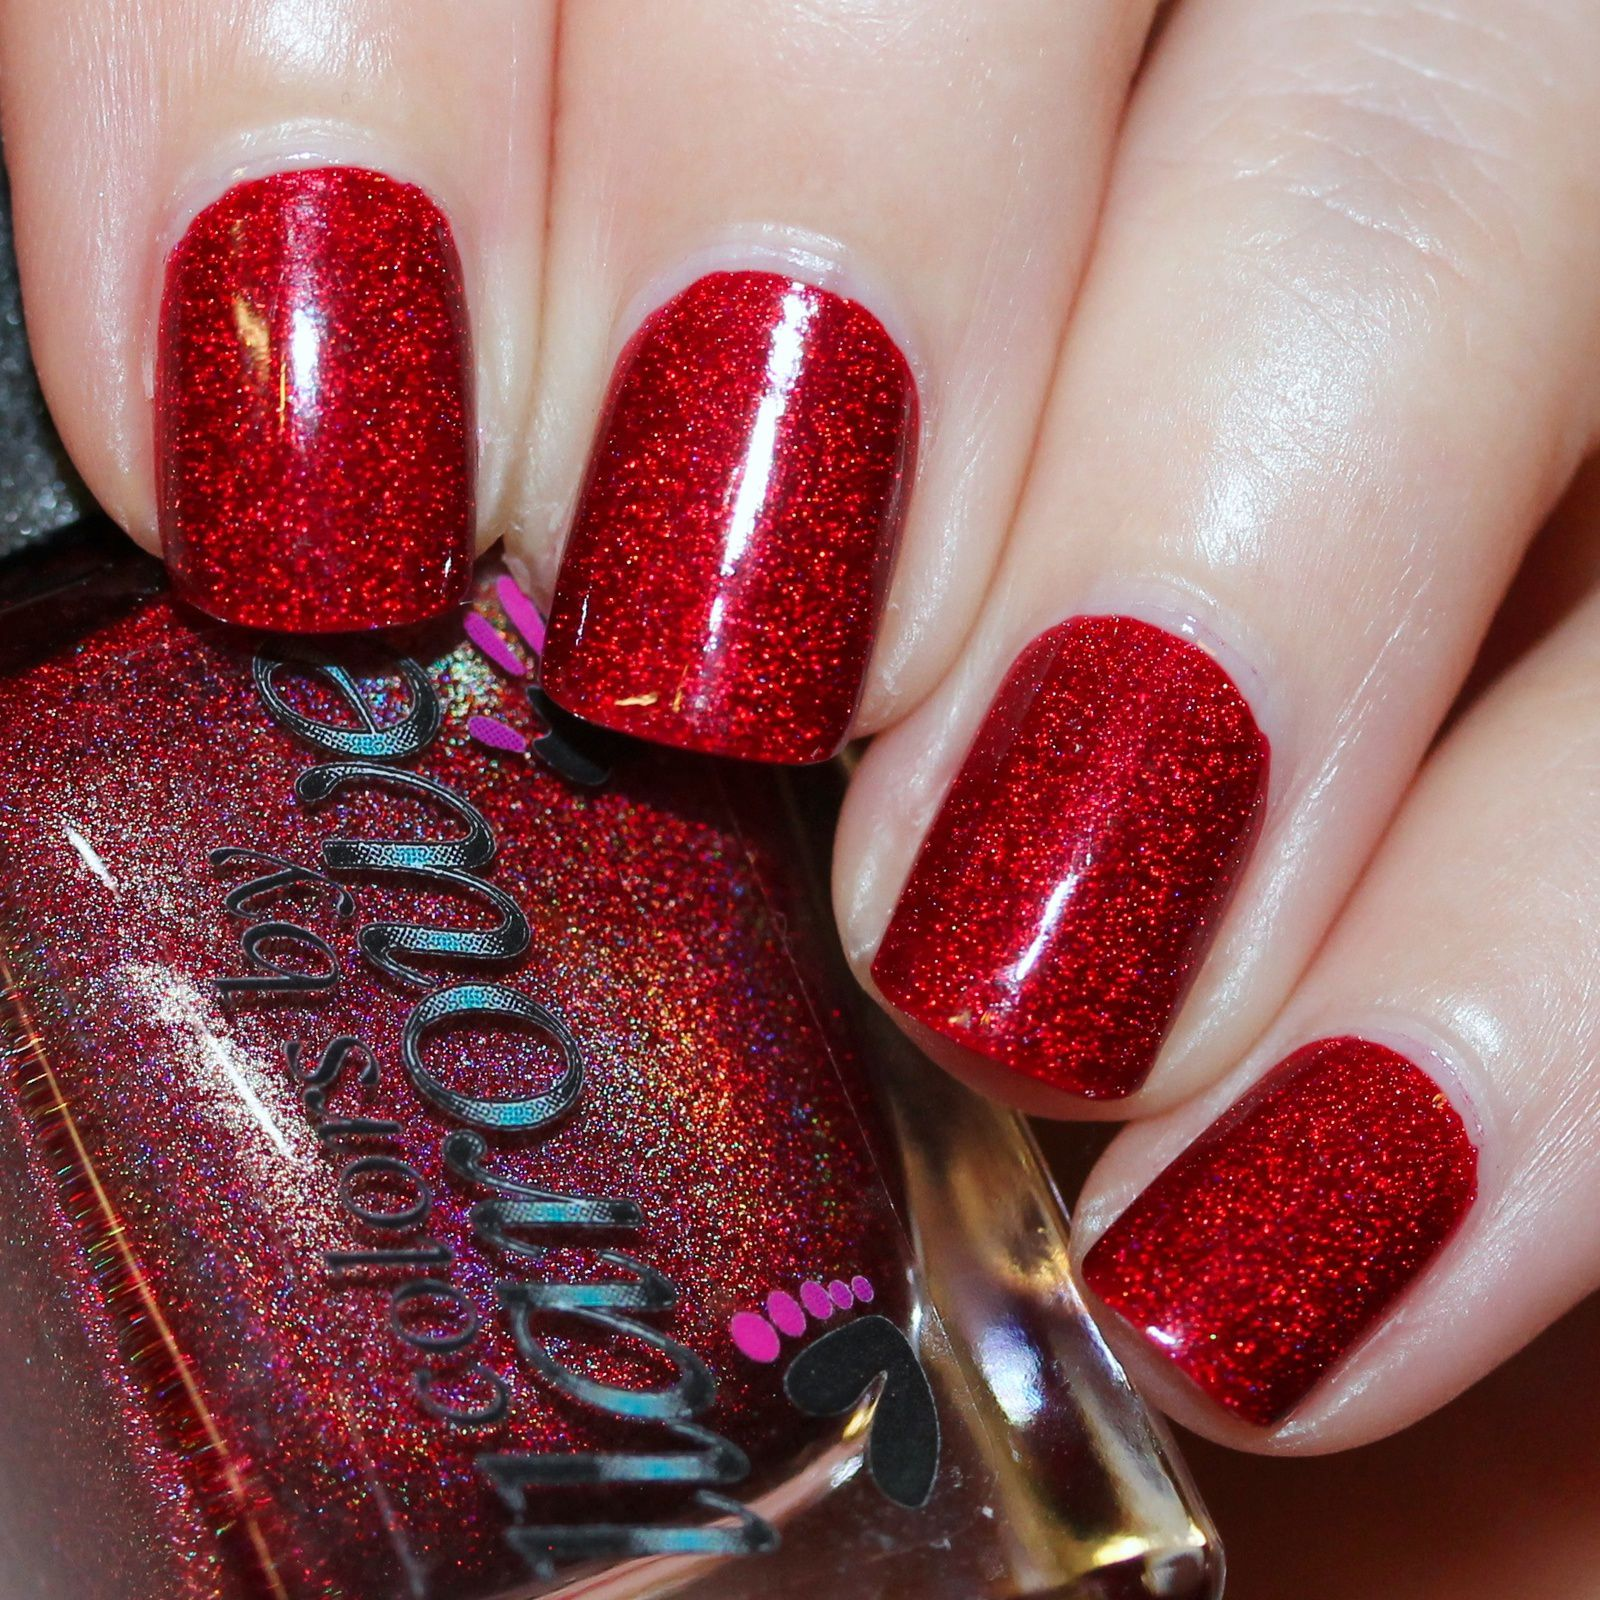 Duri Rejuvacote / Colors by Llarowe The Mighty Red Baron / Sally Hansen Miracle Gel Top Coat